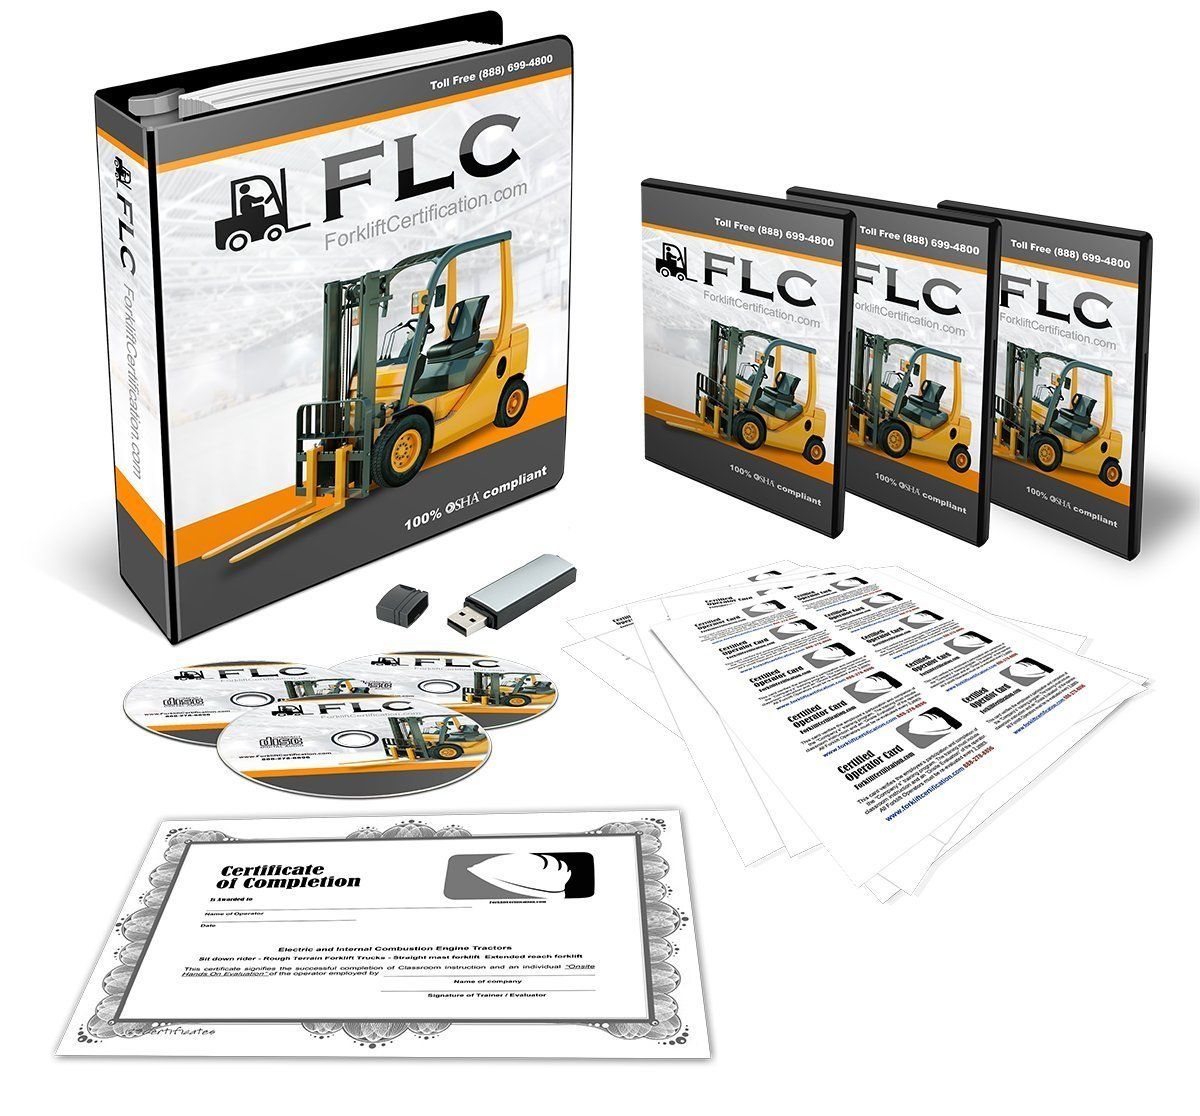 Forklift Certification Training Kit - 100% OSHA Compliant Forklift Operator COMPLETE Training With Certificates Of Completion, Operator Cards, Student Hand Outs, Evaluation Checklists & More!